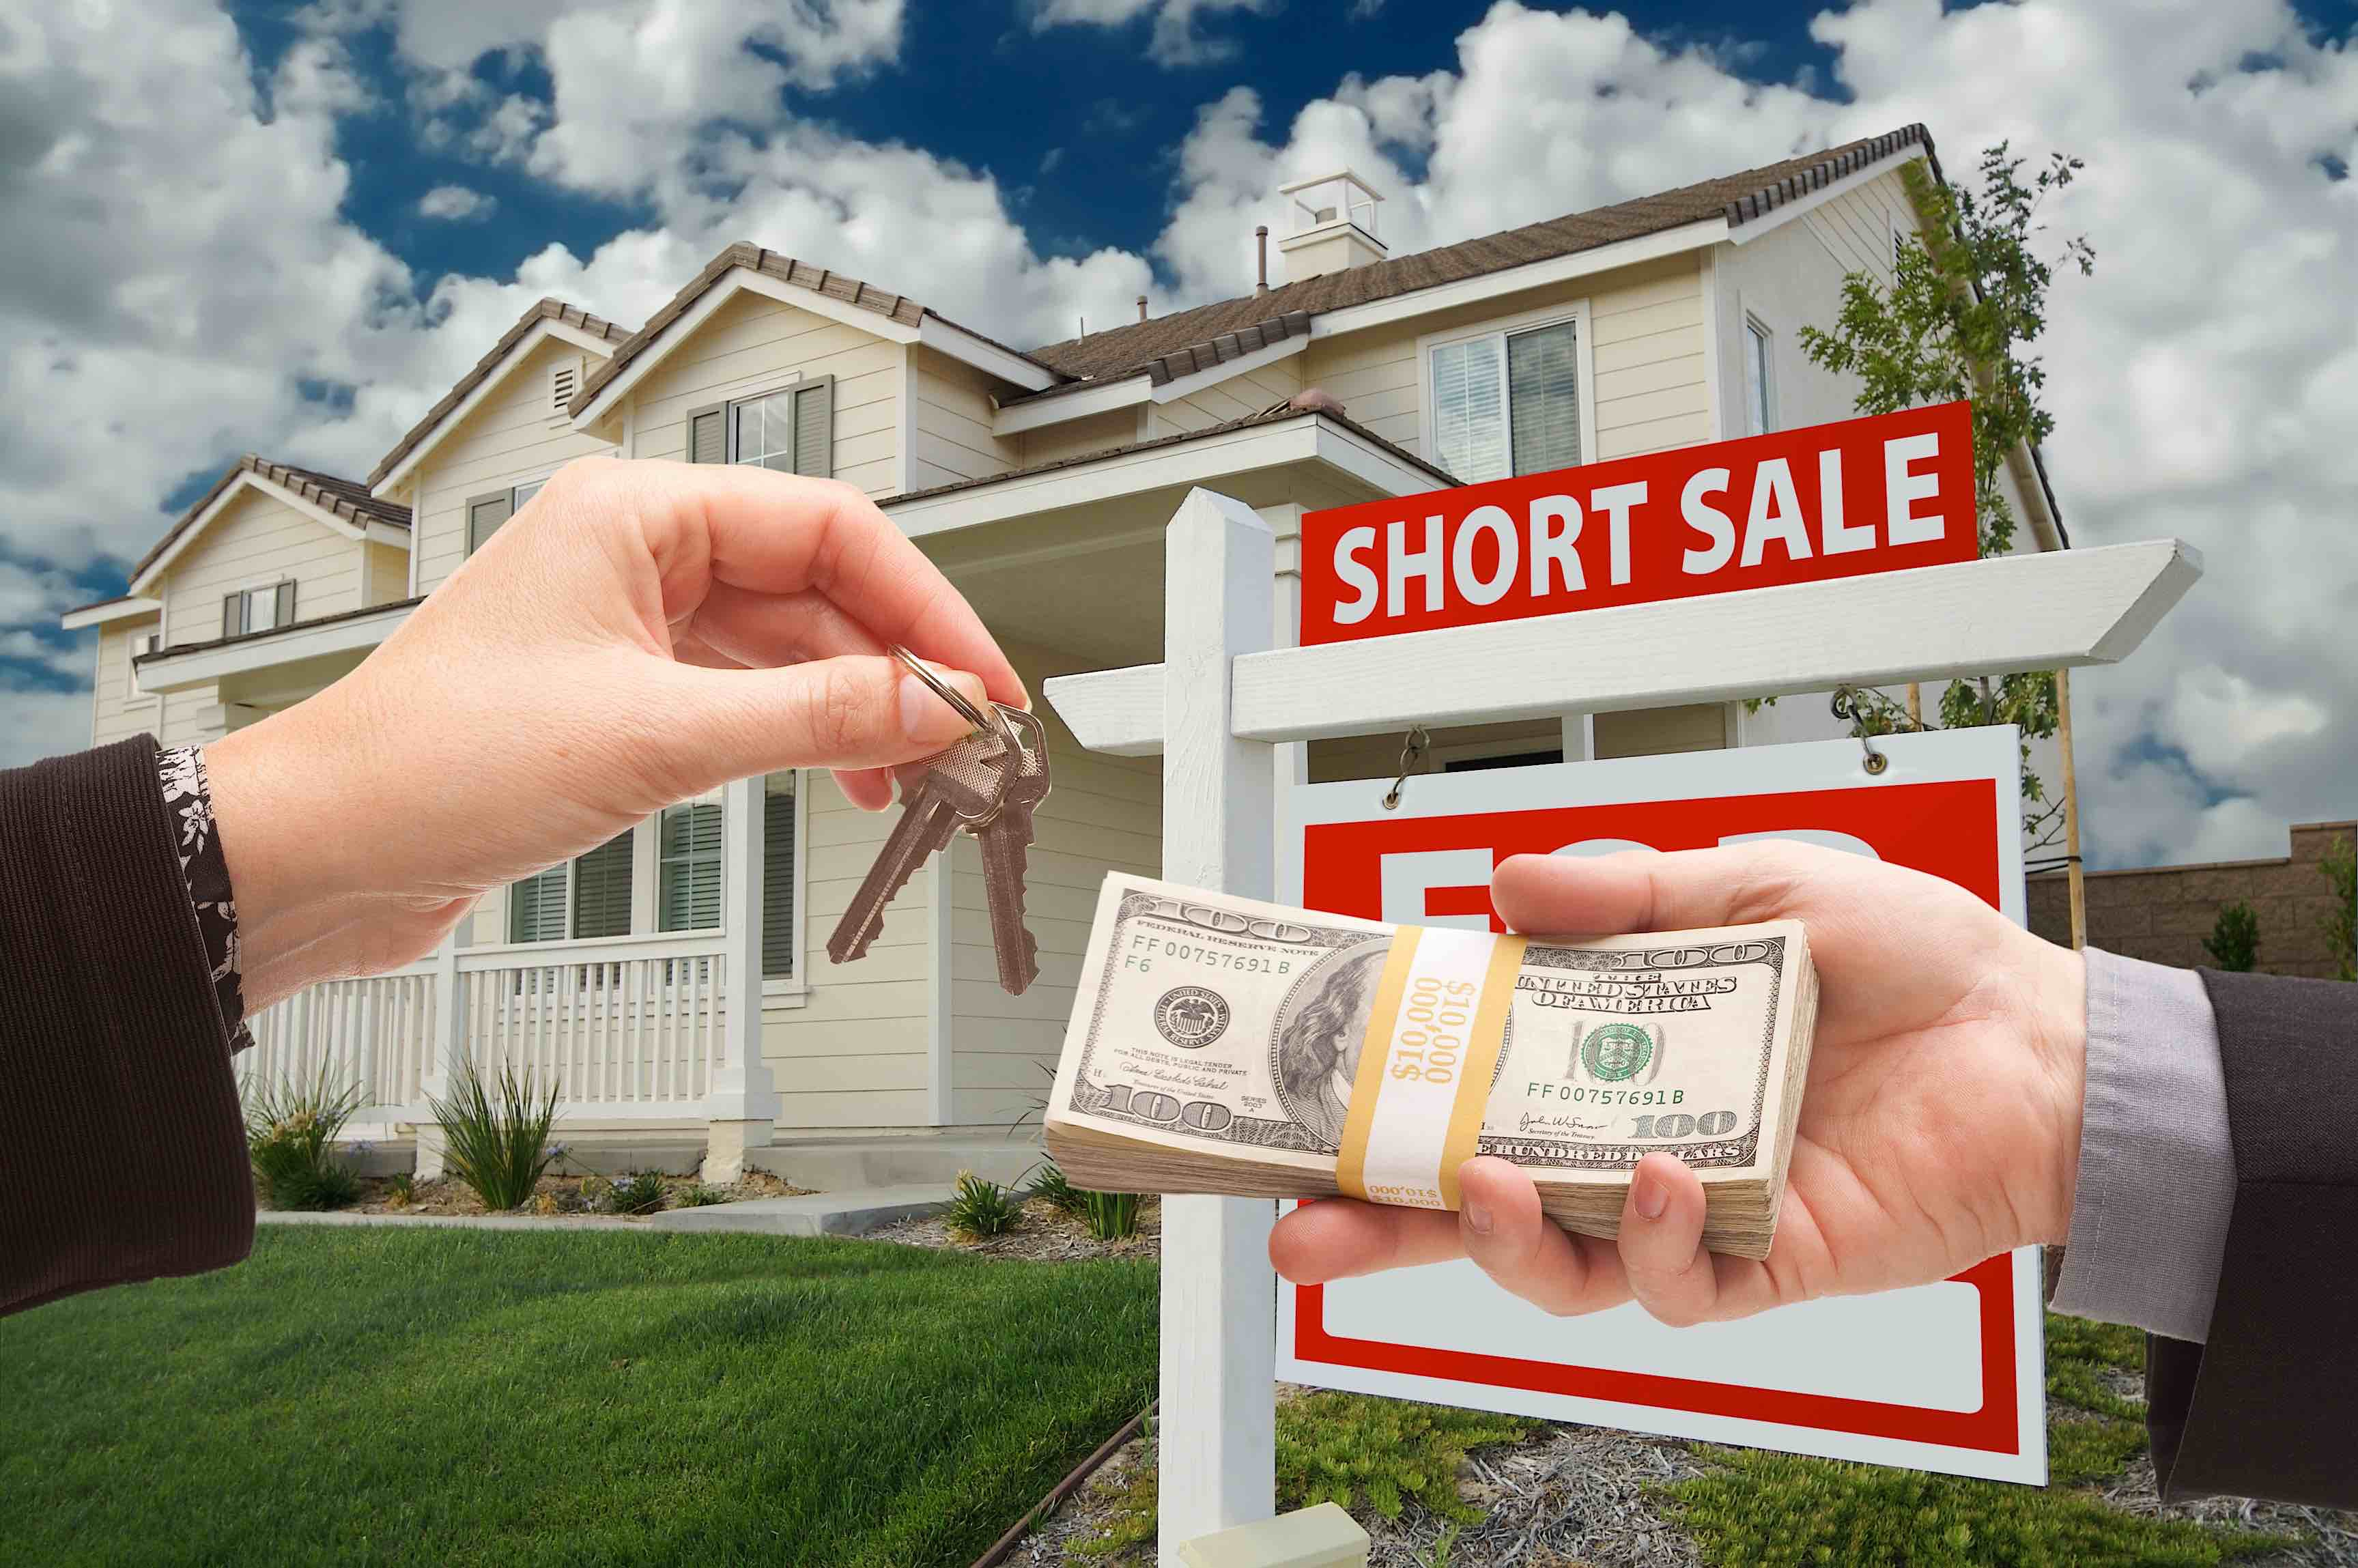 6 Common Short Sale Questions You Should Know The Answers To